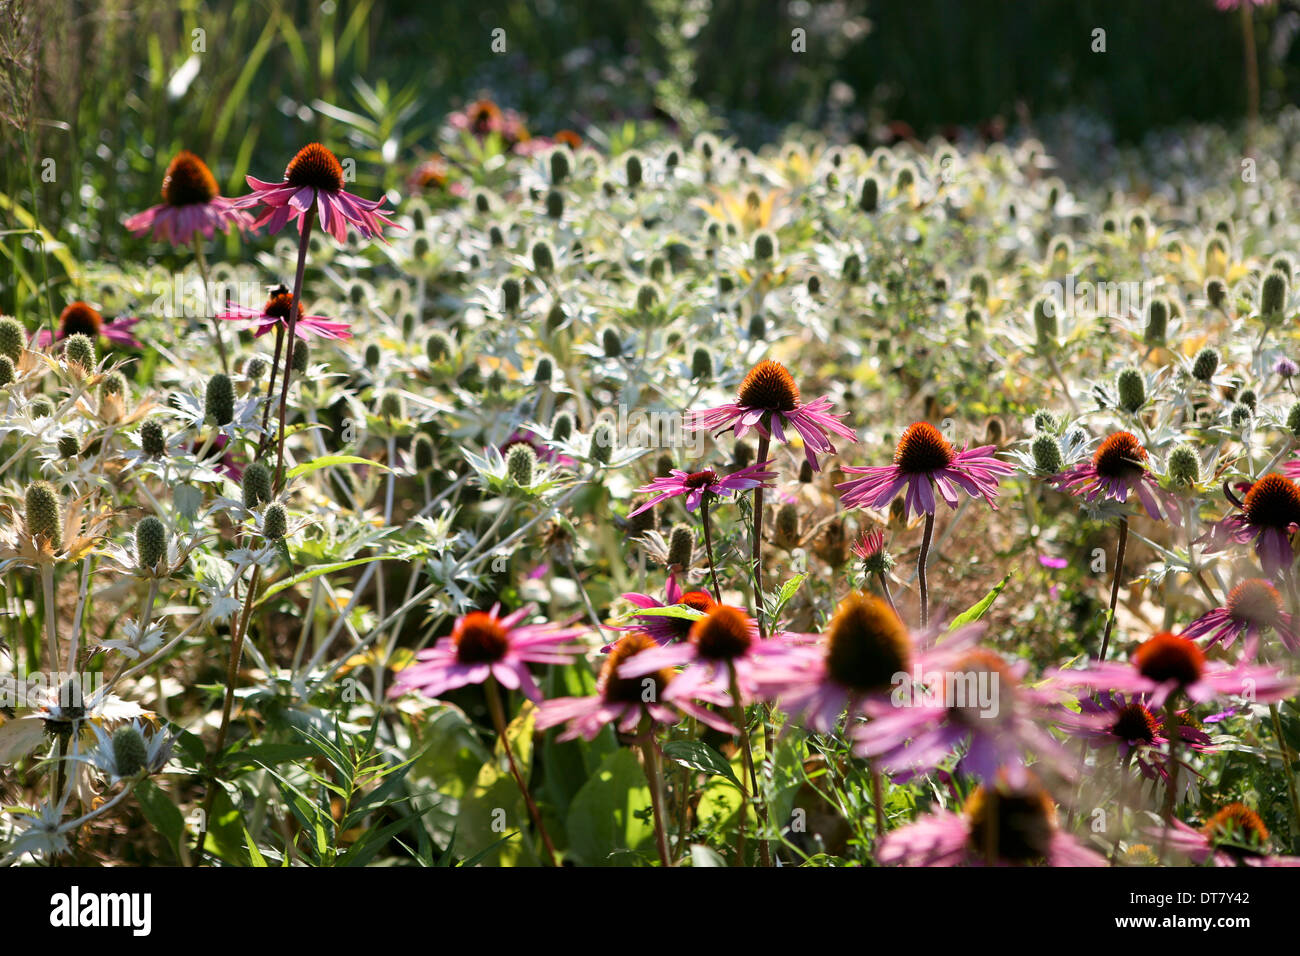 Plant combination - Echinacea purpurea (purple cone flower) and Eryngium giganteum 'Silver Ghost' (giant sea holly) - Stock Image